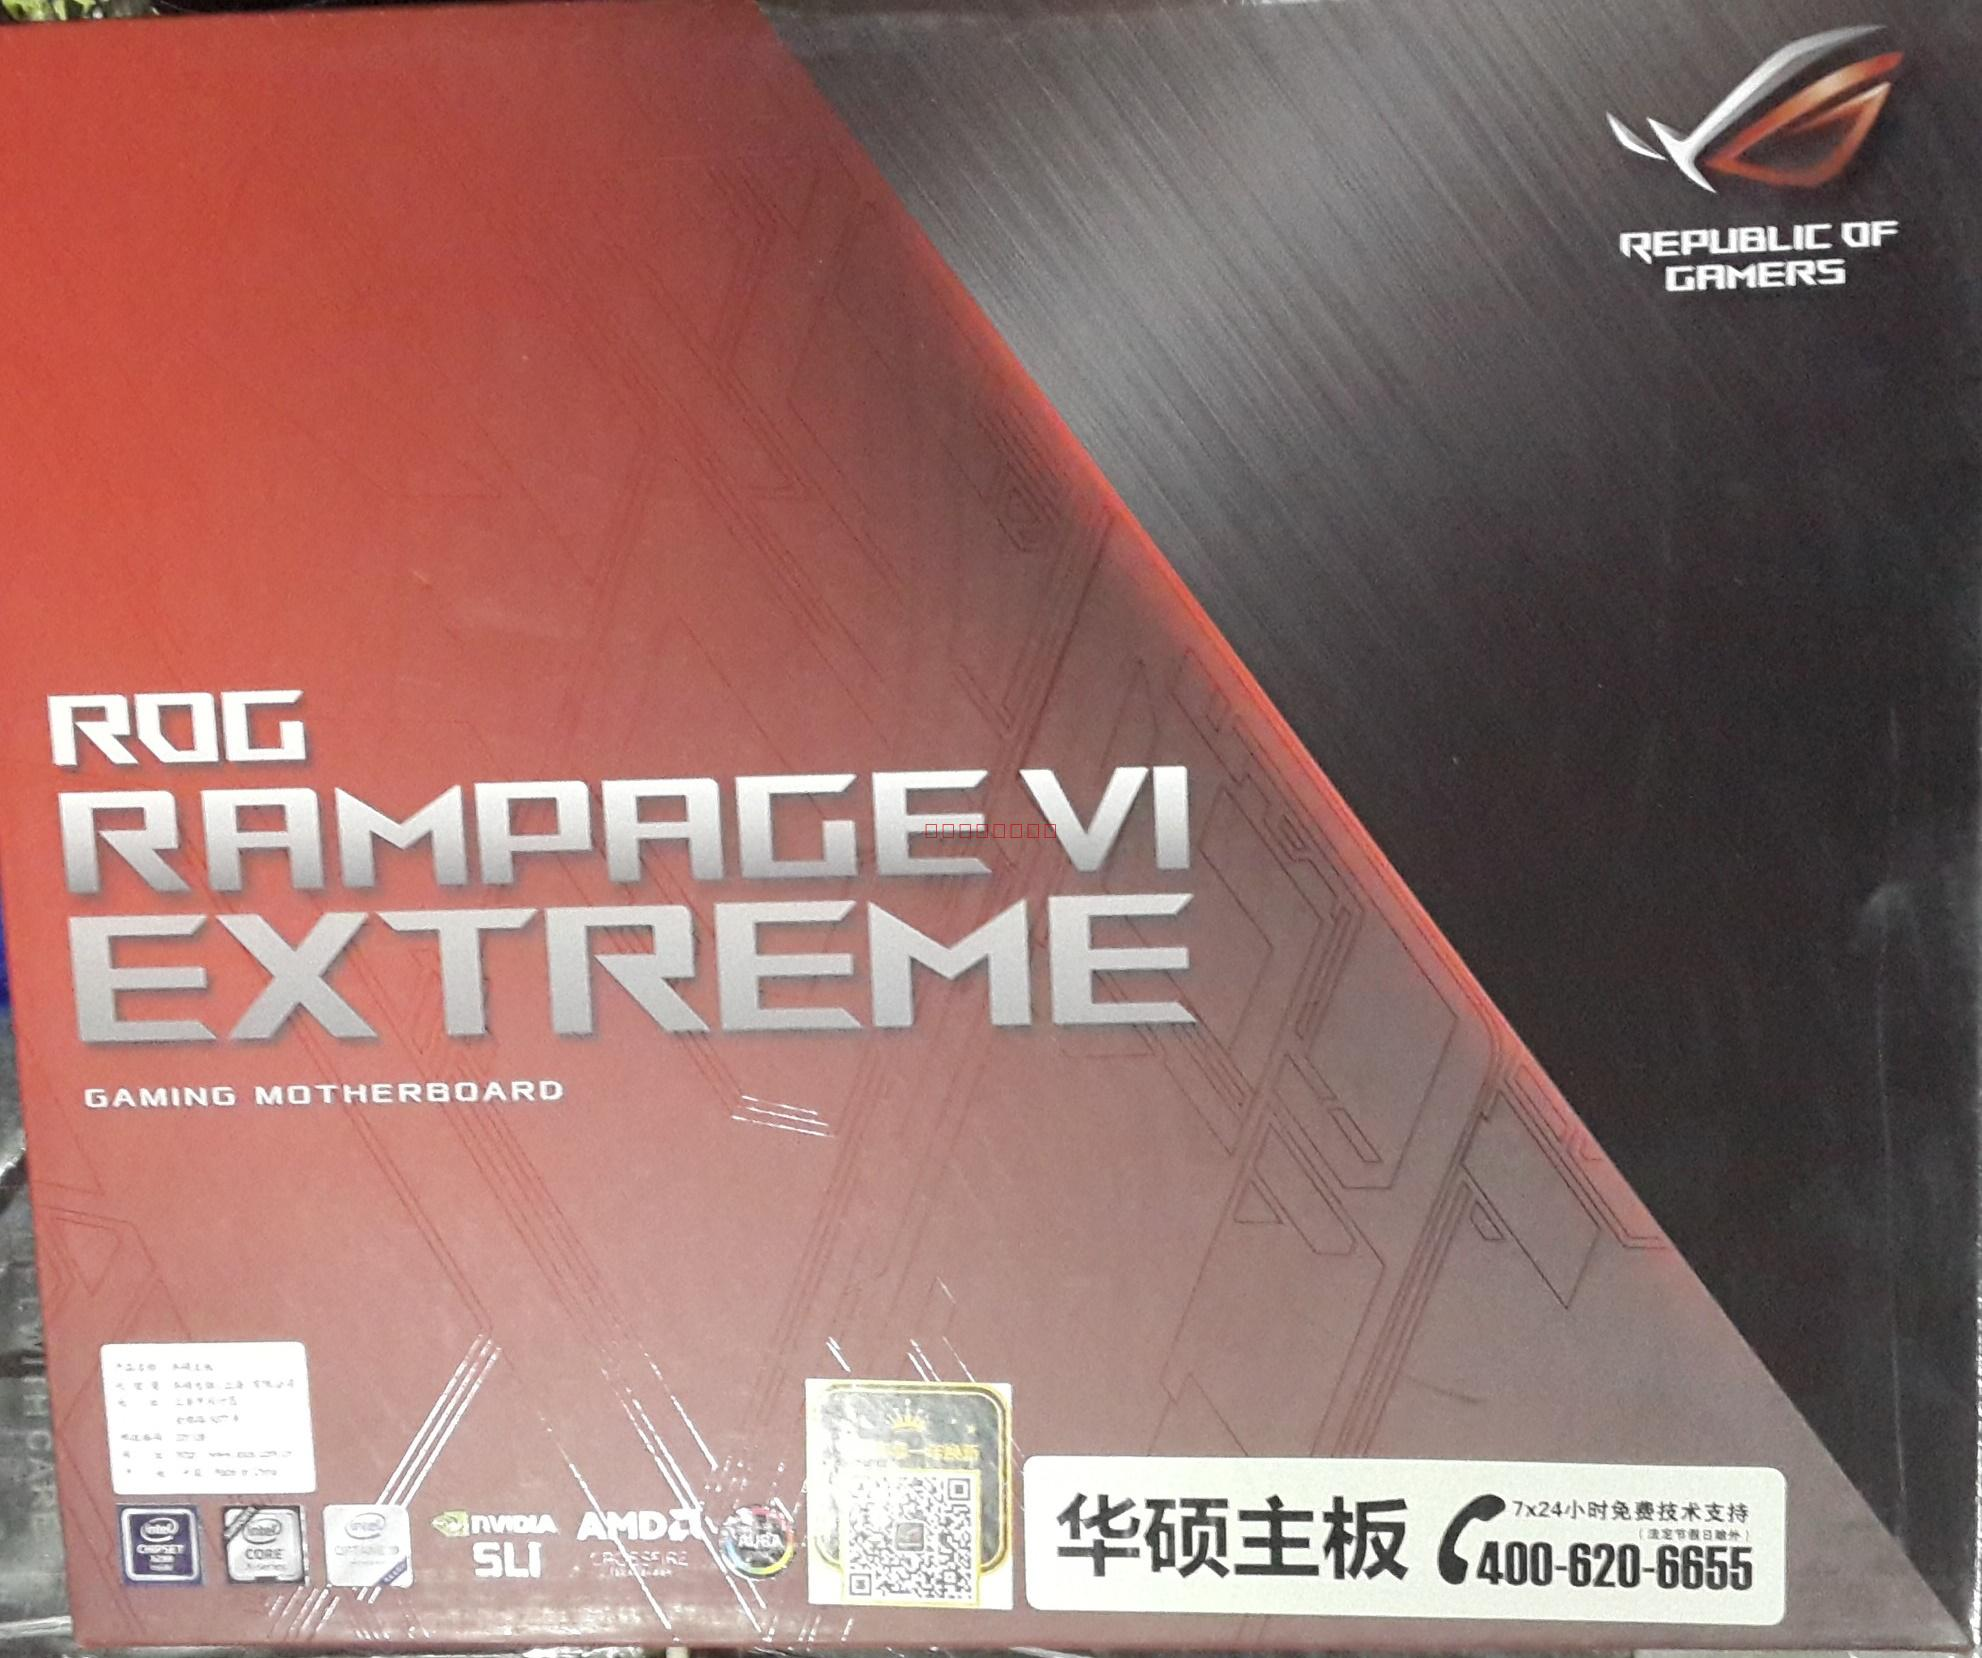 ASUS ROG RAMPAGE VI EXTREME R6E <font><b>X299</b></font> Mainboard Support LGA2066 DDR4 Dual M.2 Extension Card Desktop Motherboard image